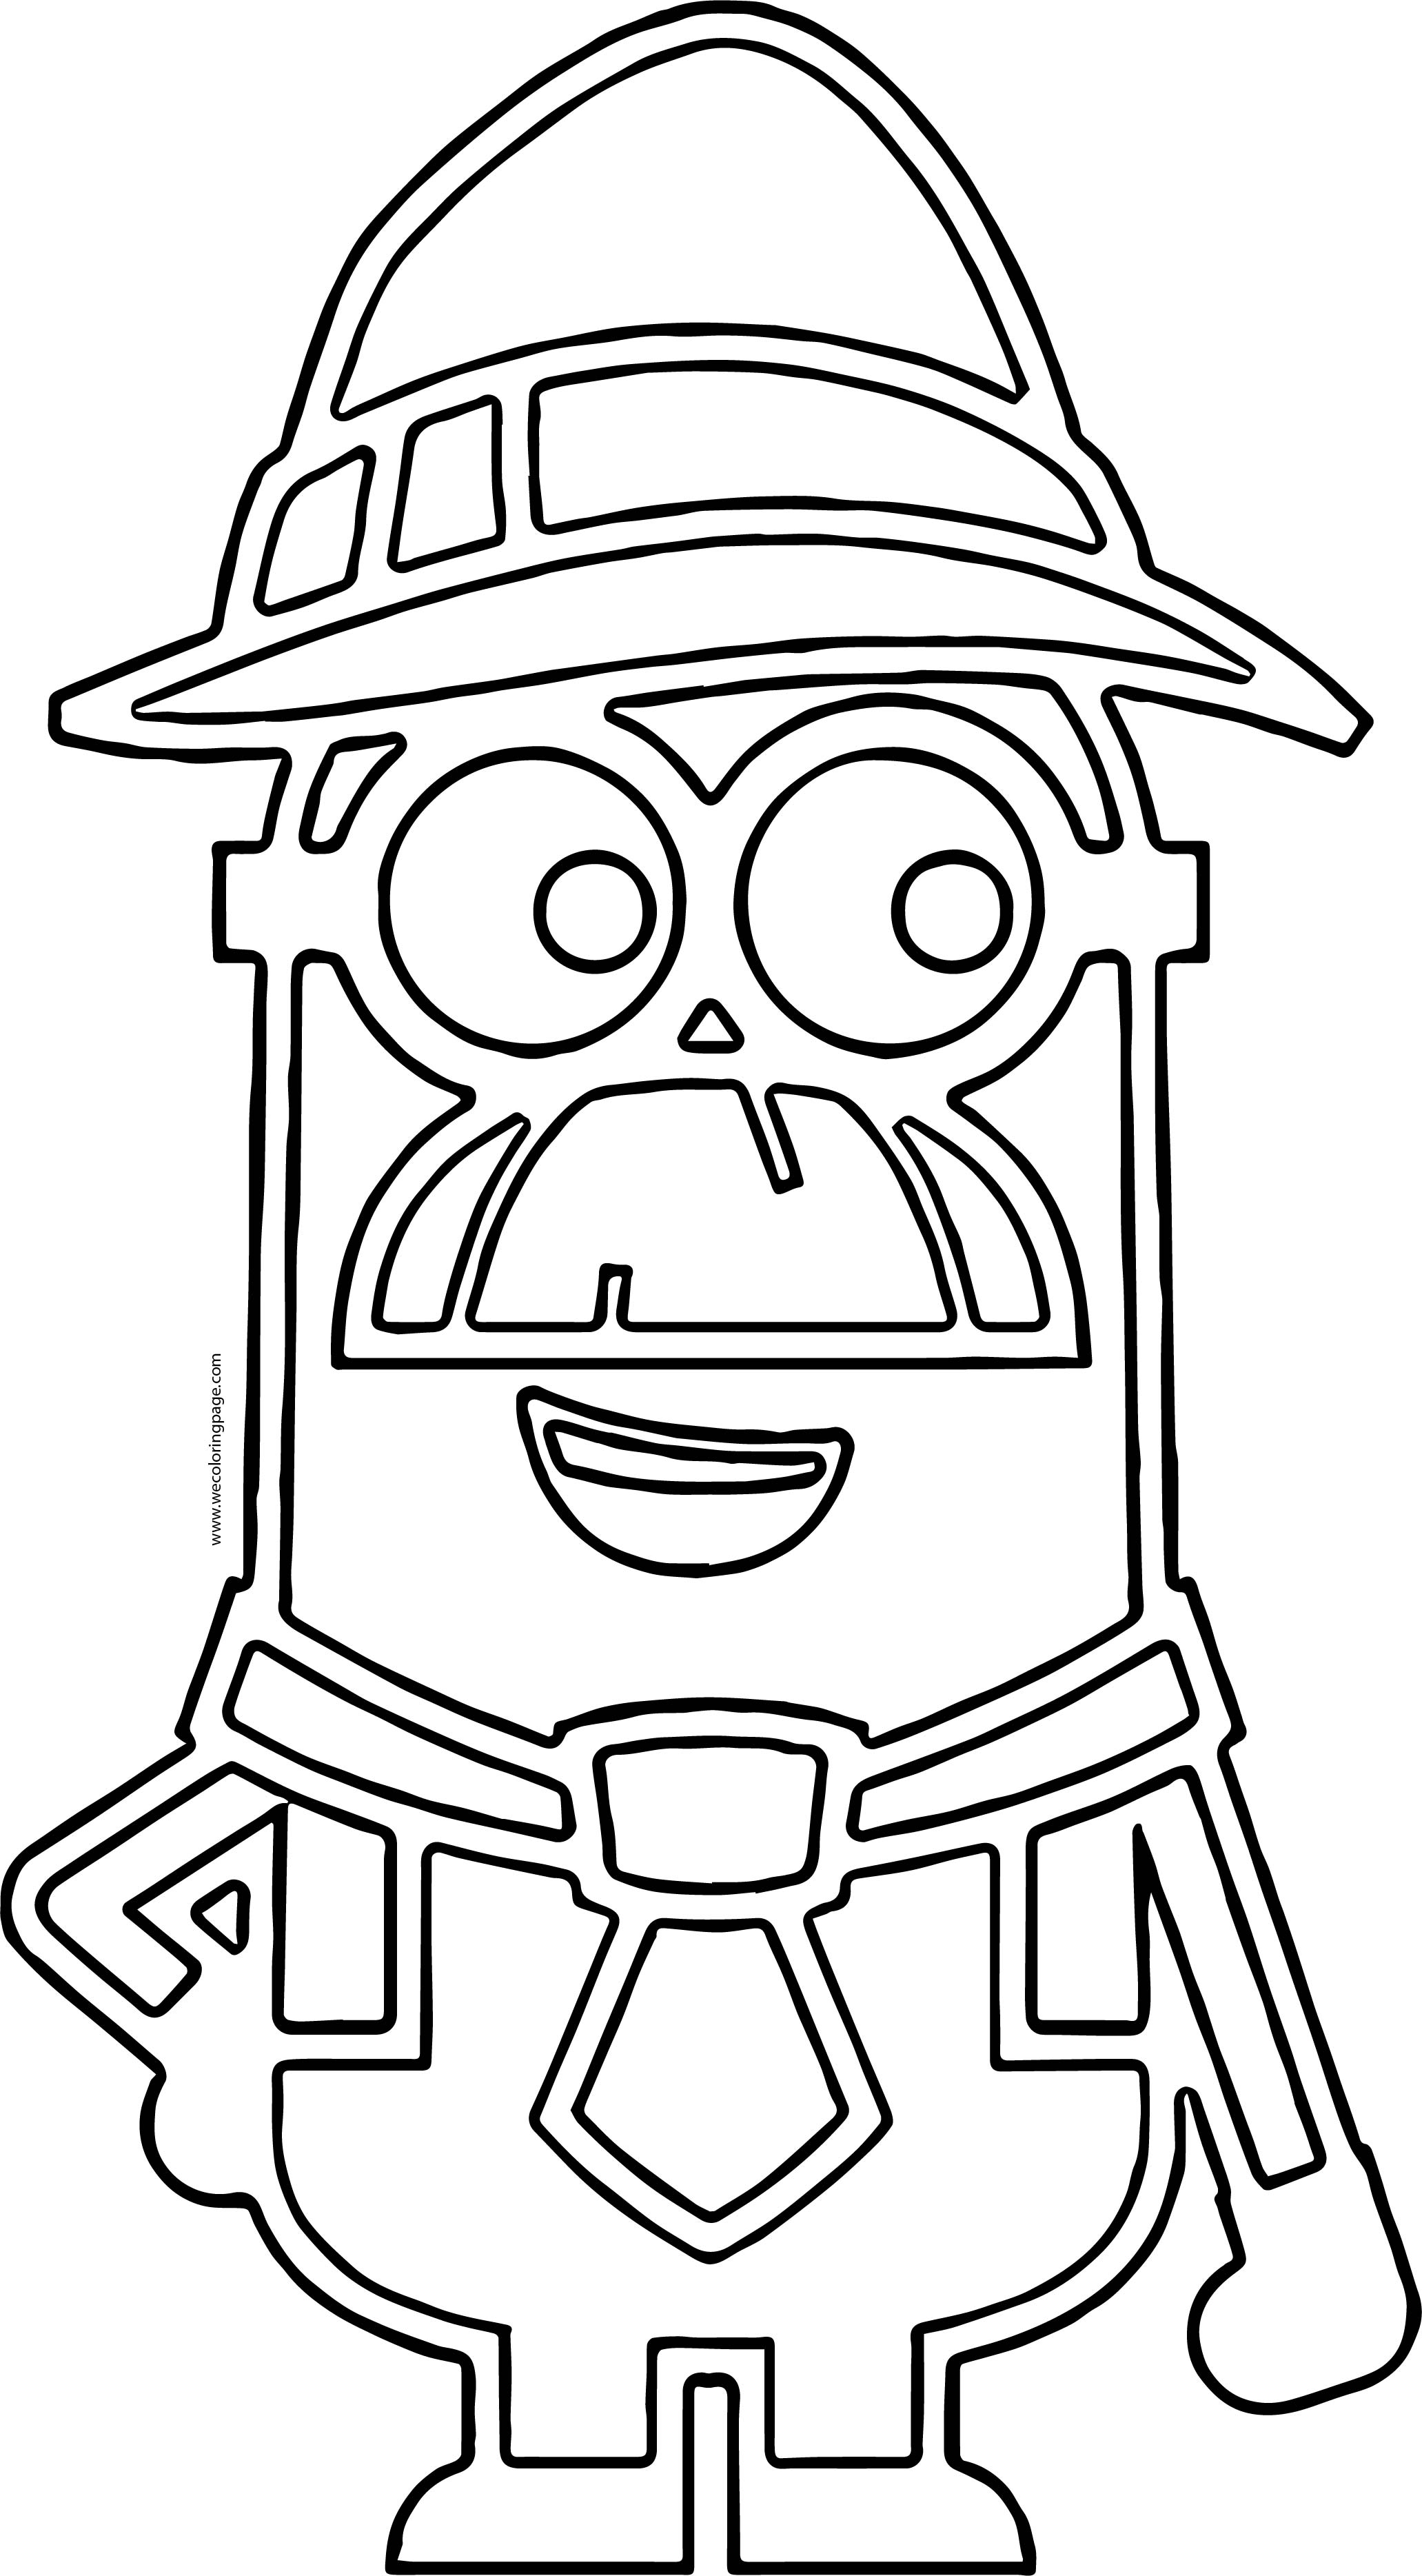 Old Minion Minions Outline Coloring Page